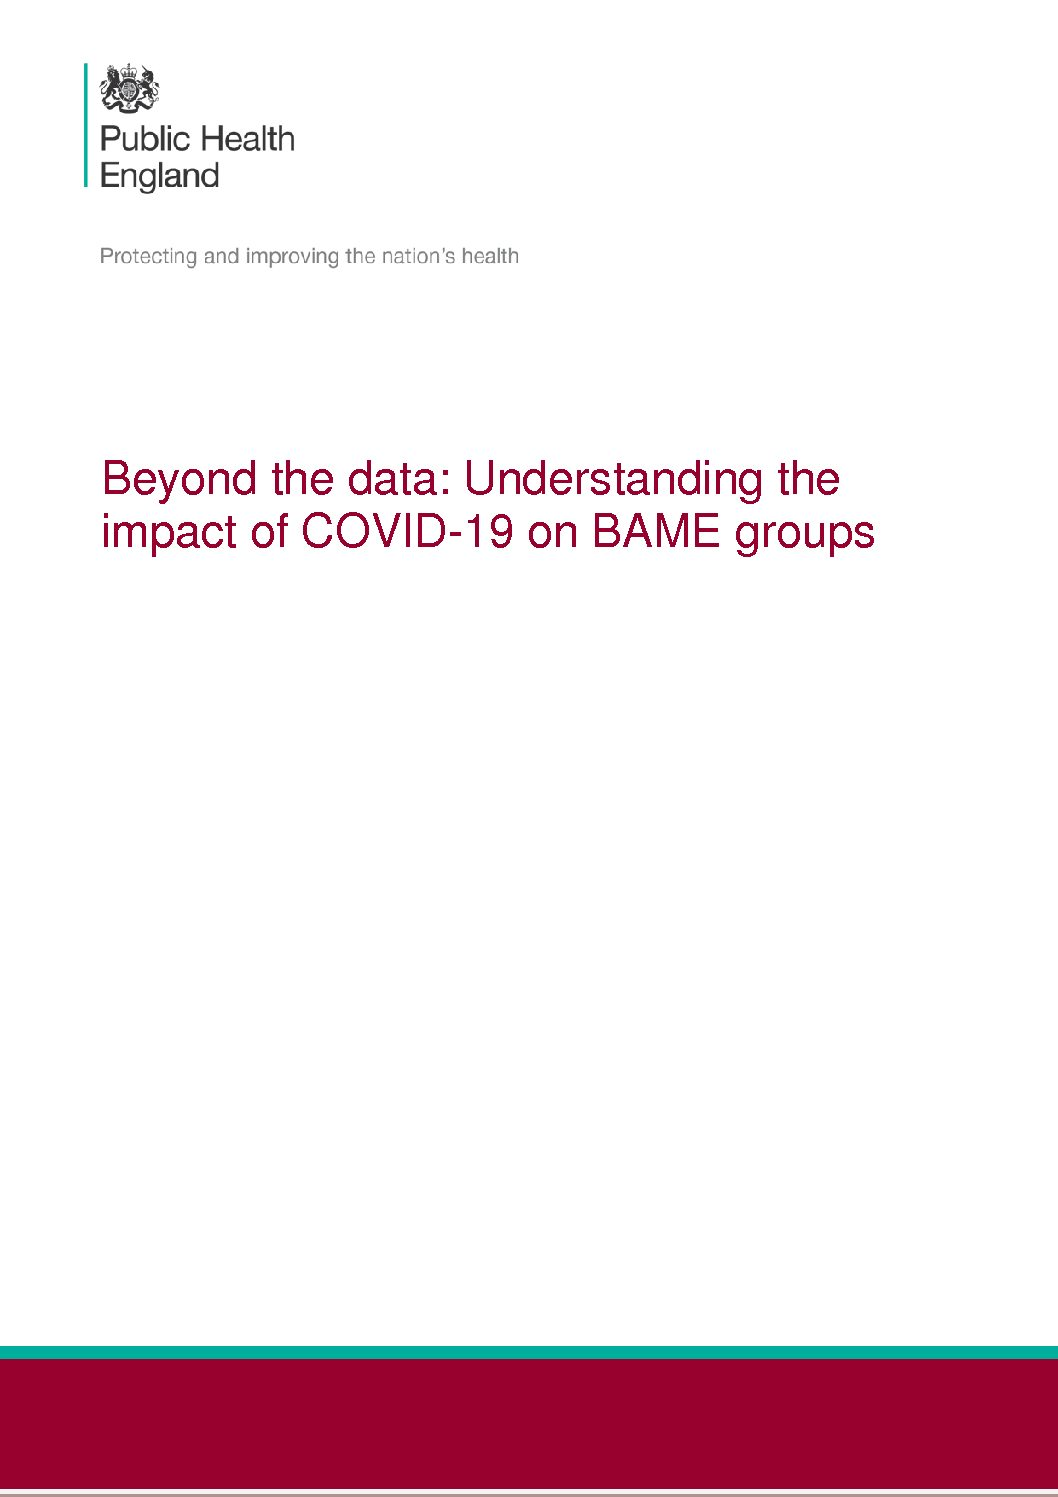 https://www.cbmeforum.org/wp-content/uploads/COVID_stakeholder_engagement_synthesis_beyond_the_data-2.pdf